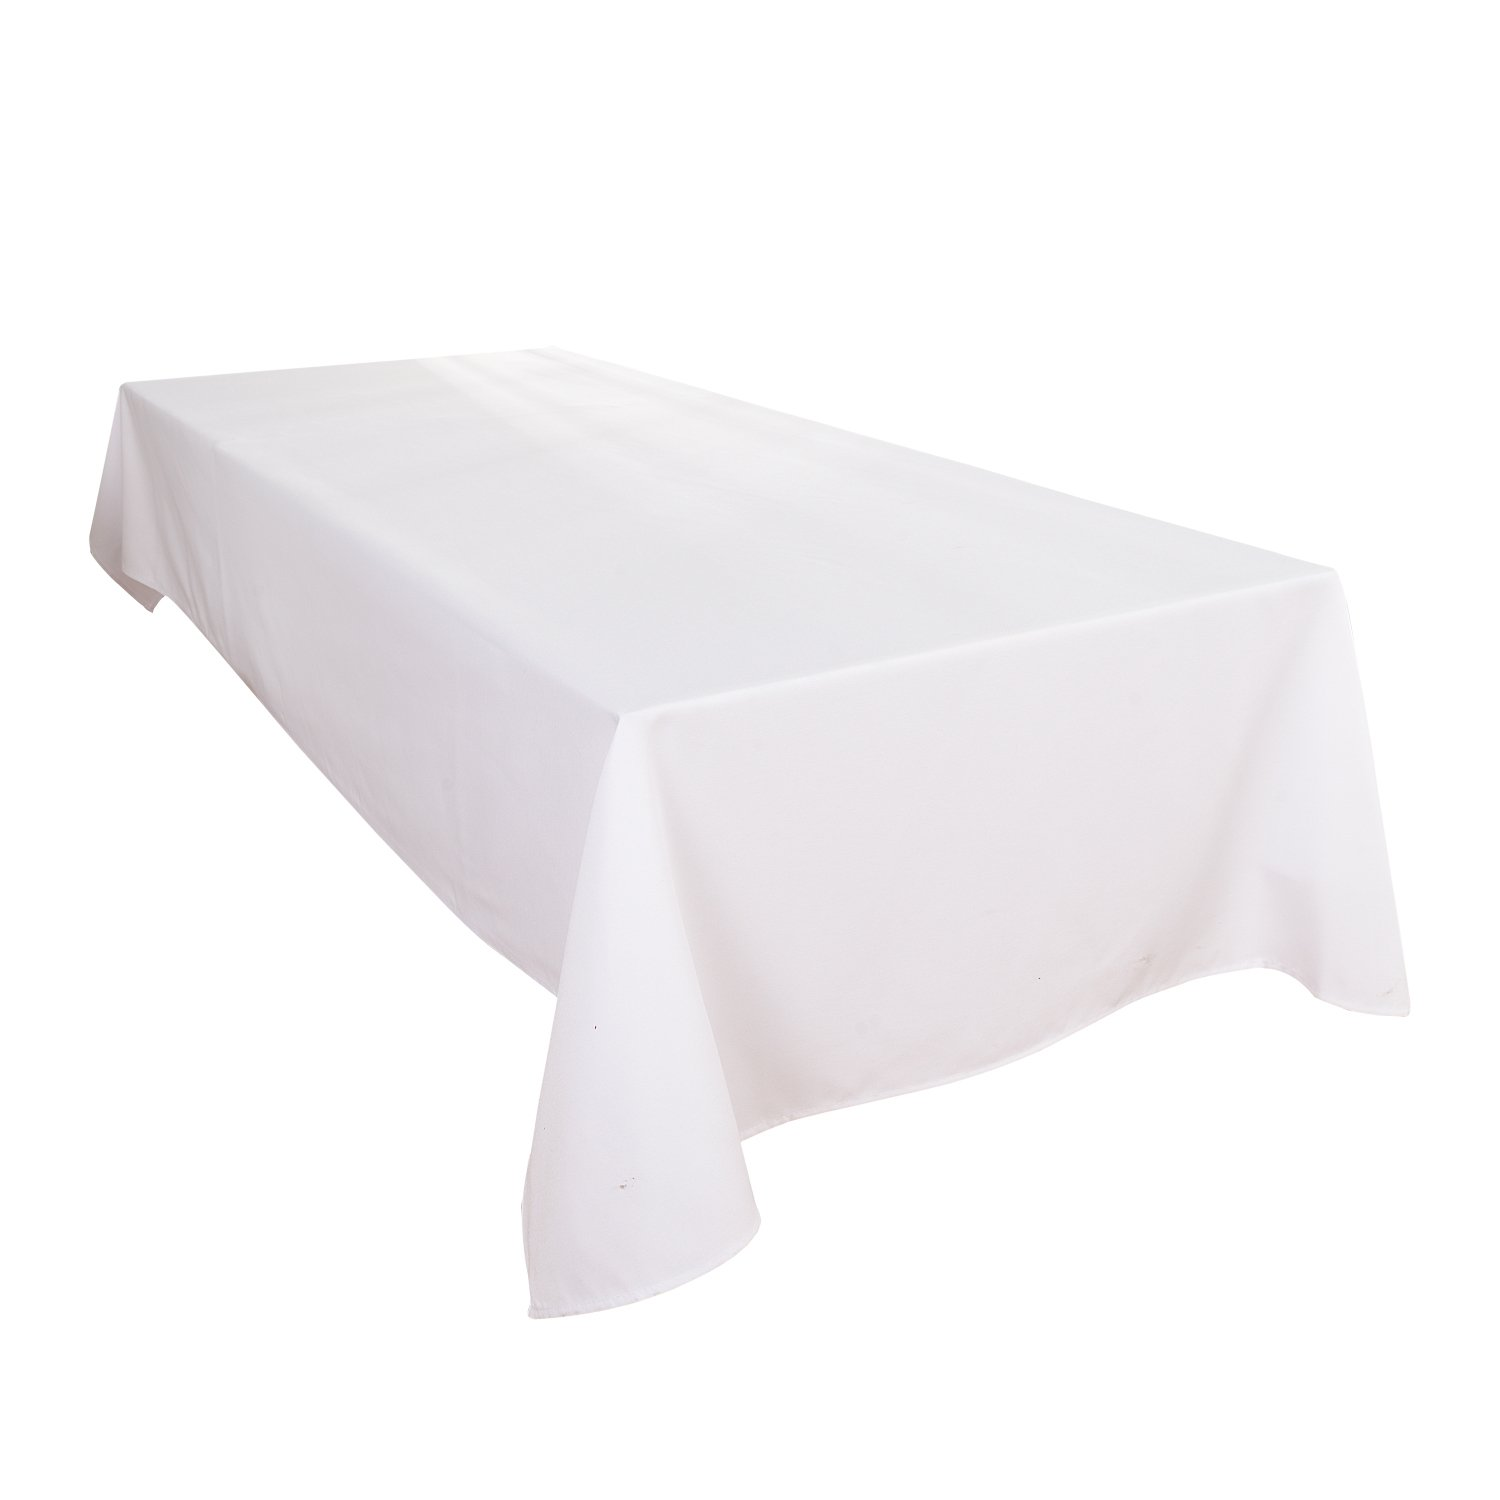 HIGHFLY Linen Rectangle Tablecloth 60 X 84 Inch Waterproof White Tablecloth for Dining room Restaurant